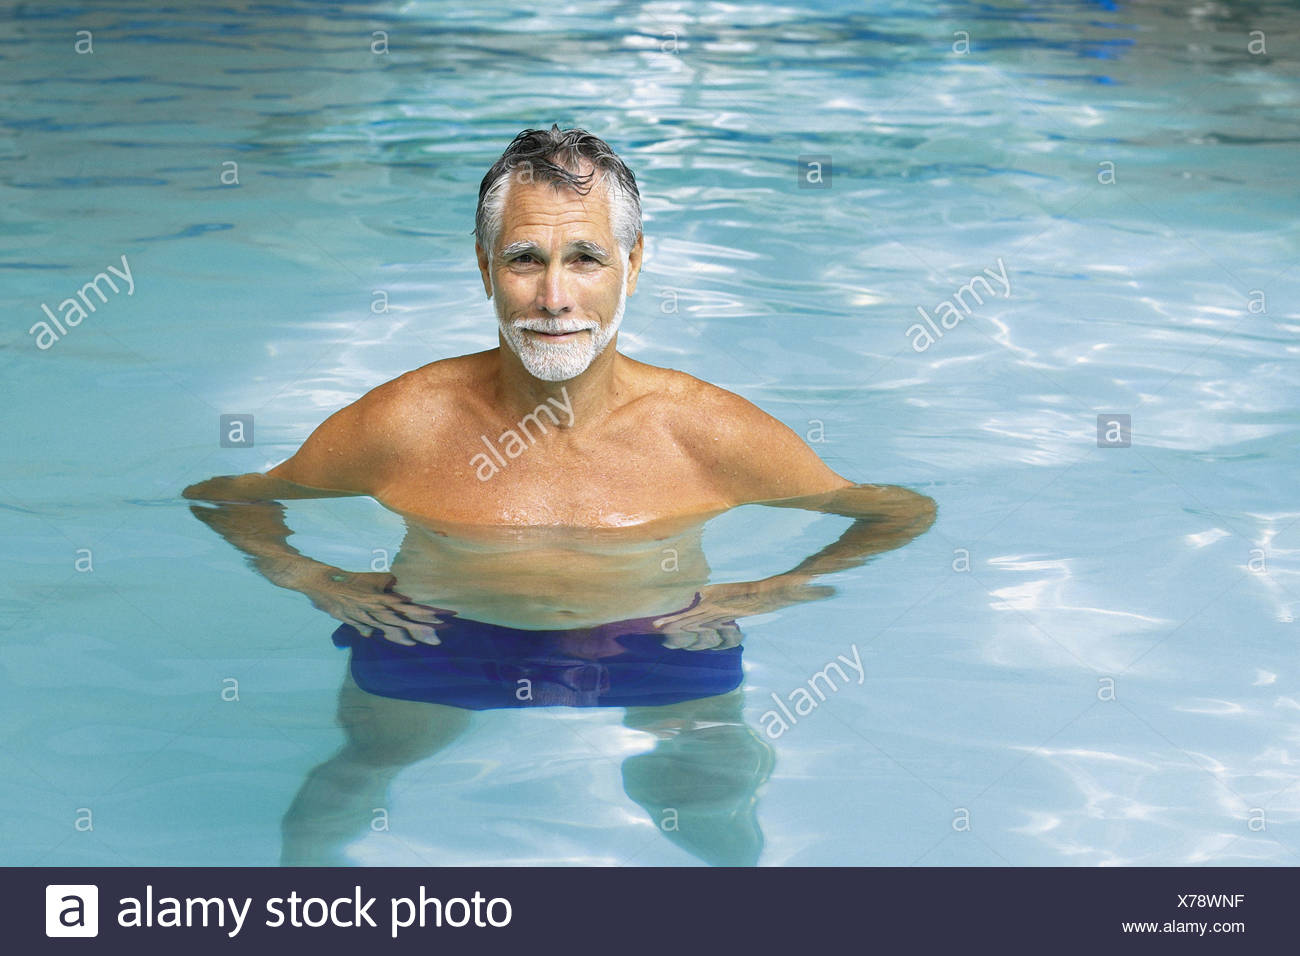 19cb916909 Old Man In Swimming Trunks Stock Photos & Old Man In Swimming Trunks ...